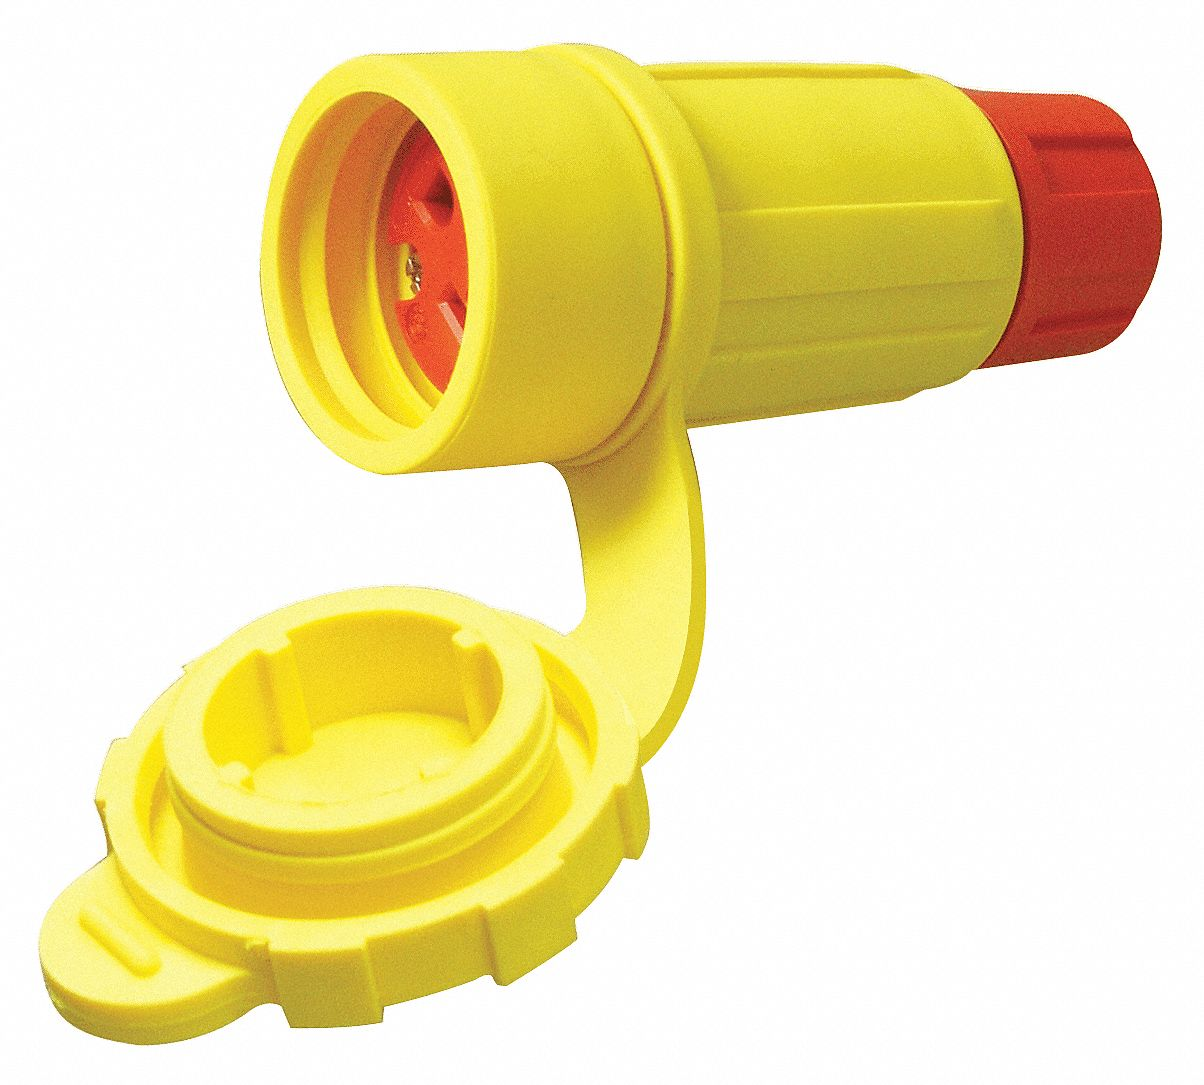 30 Amp Industrial Grade Watertight Locking Connector, L16-30R NEMA Configuration, Yellow